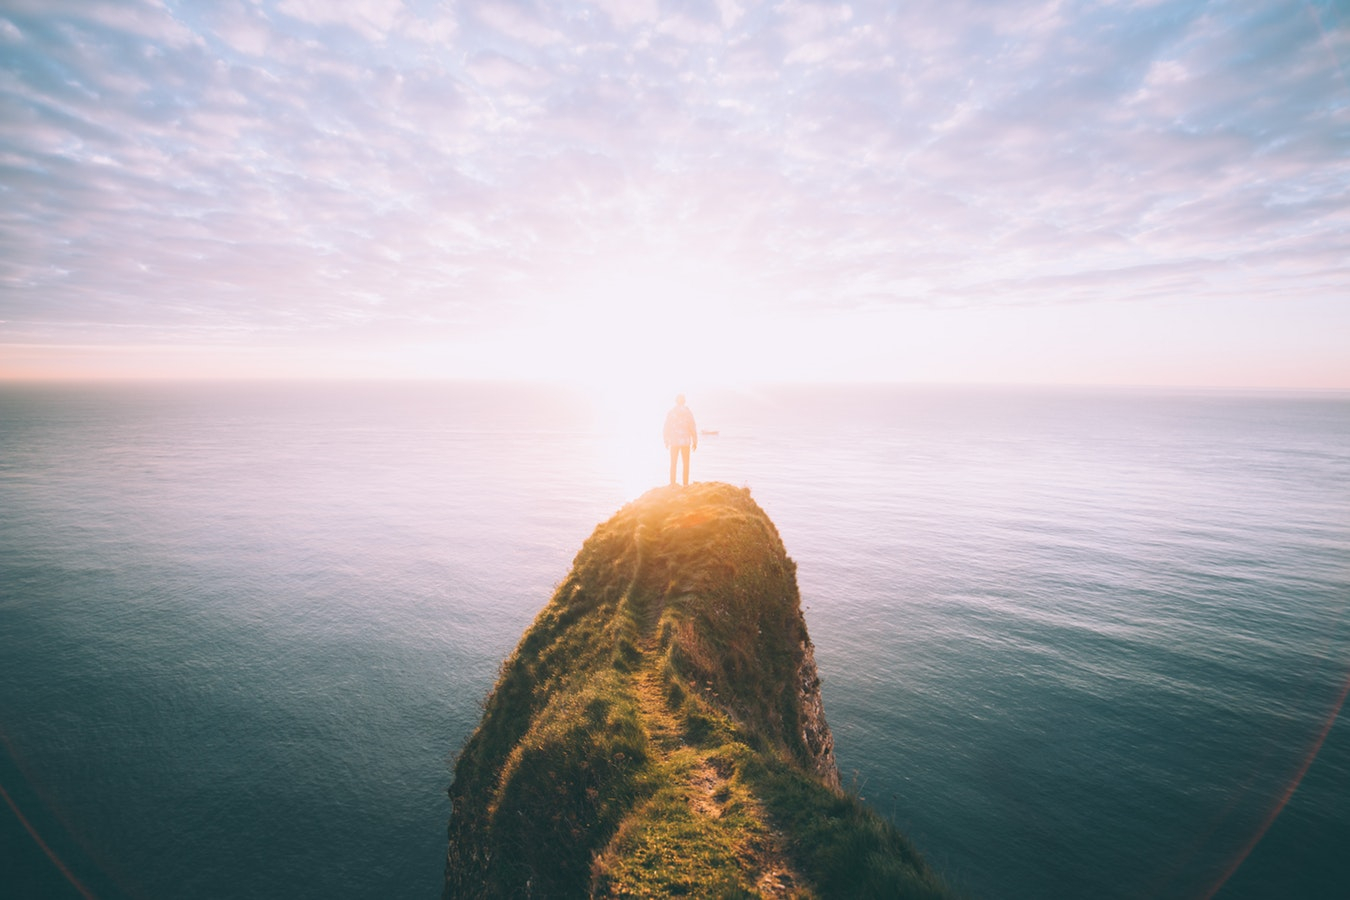 Photo by Will van Wingerden on Unsplash